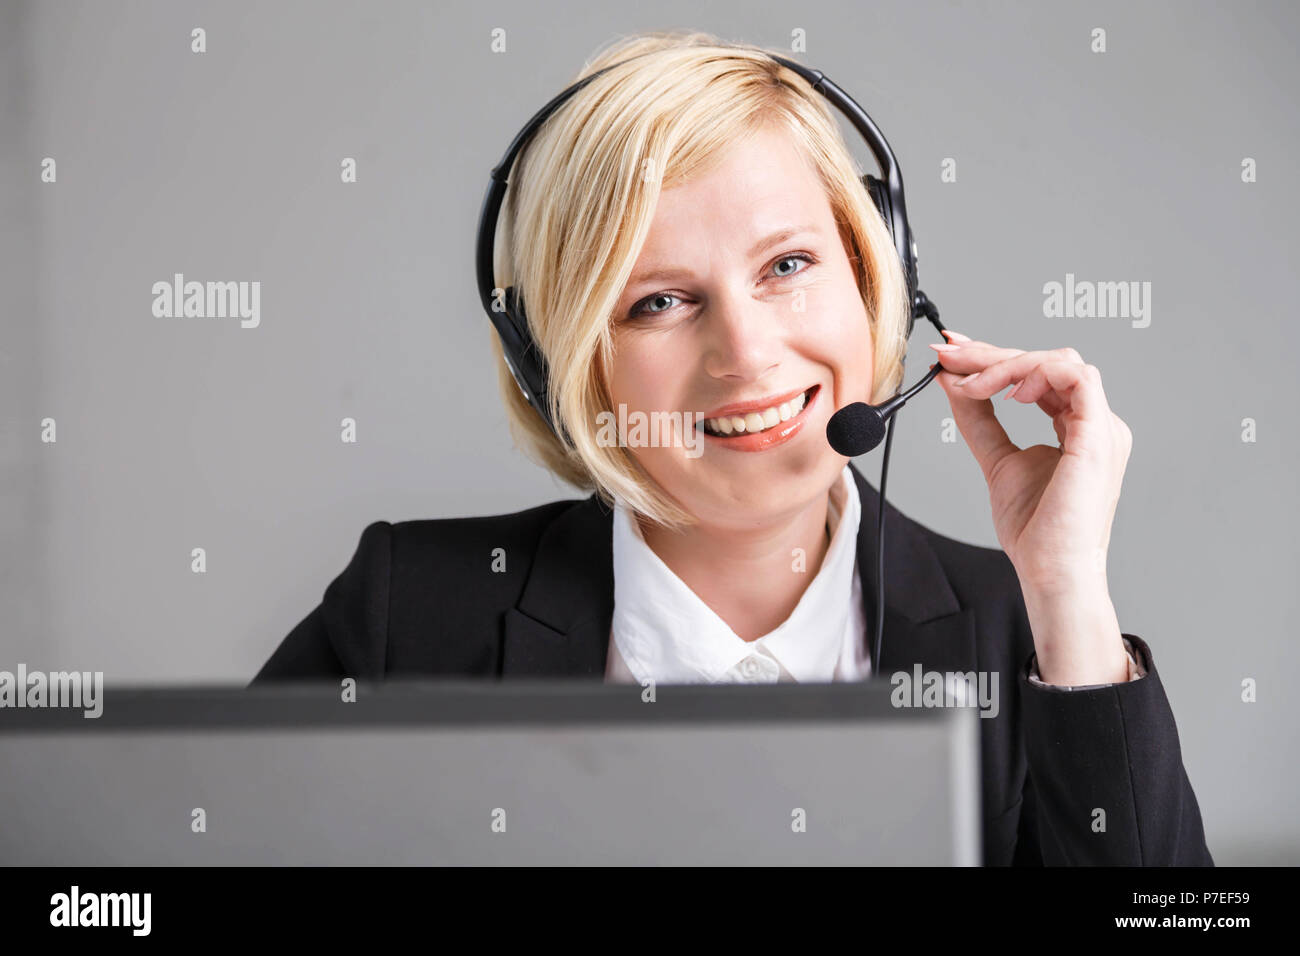 Pretty smiling blonde woman, call center operator dressed in black stylish suit with headset earphones Stock Photo